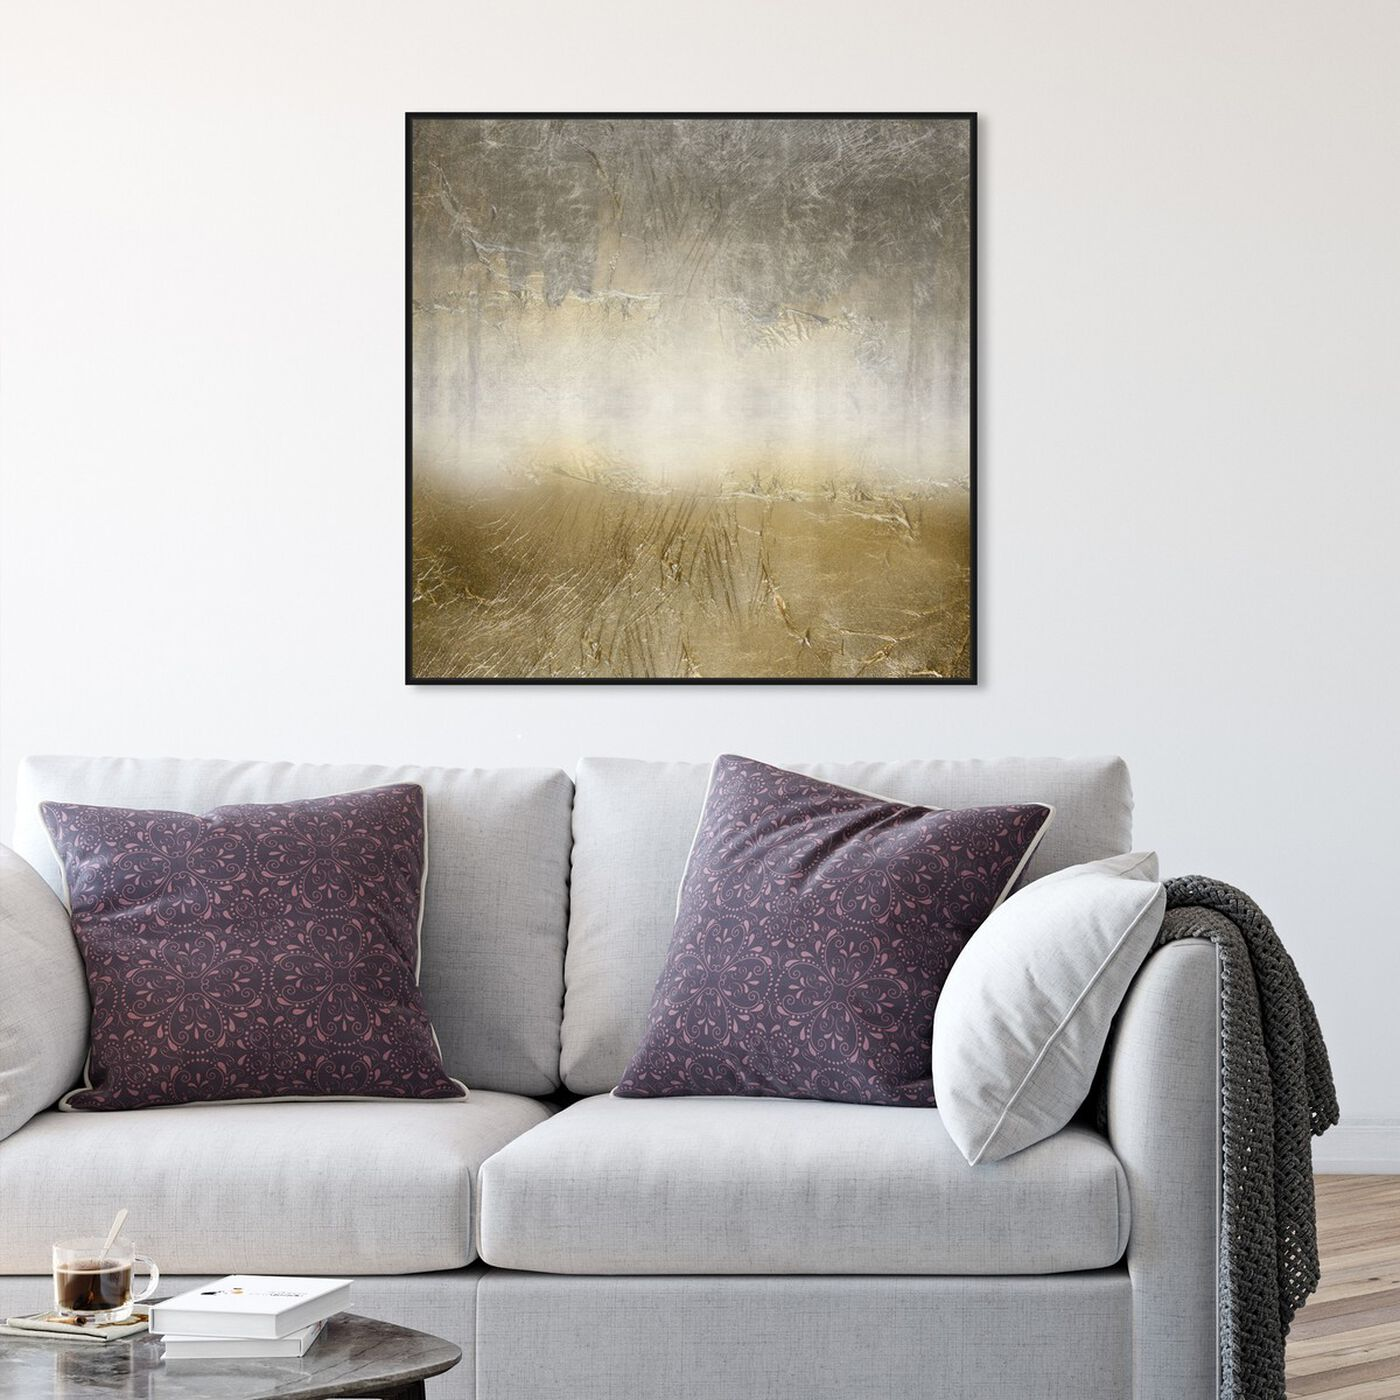 Hanging view of Magari featuring abstract and textures art.